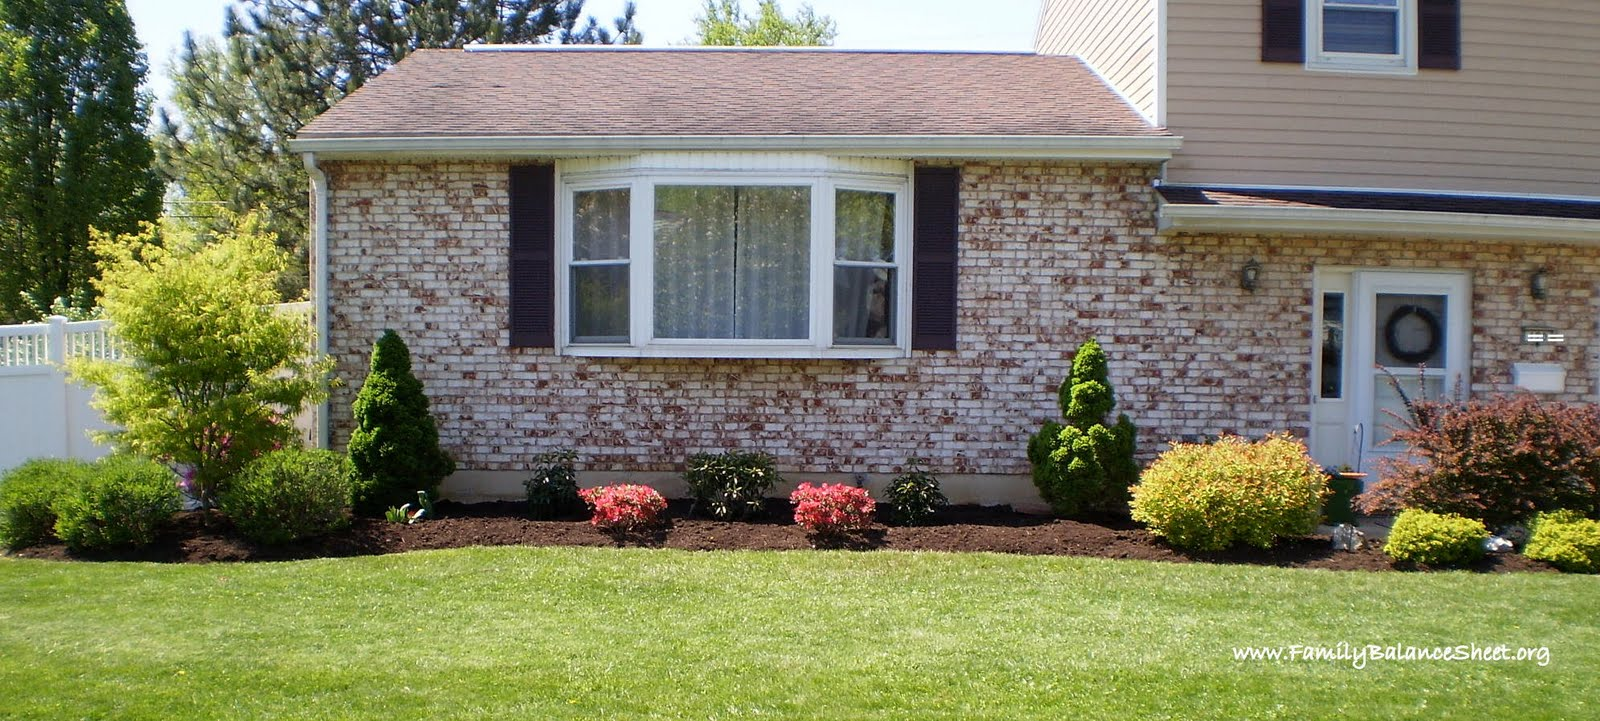 15 tips to help you design your front yard save money too for Front garden ideas